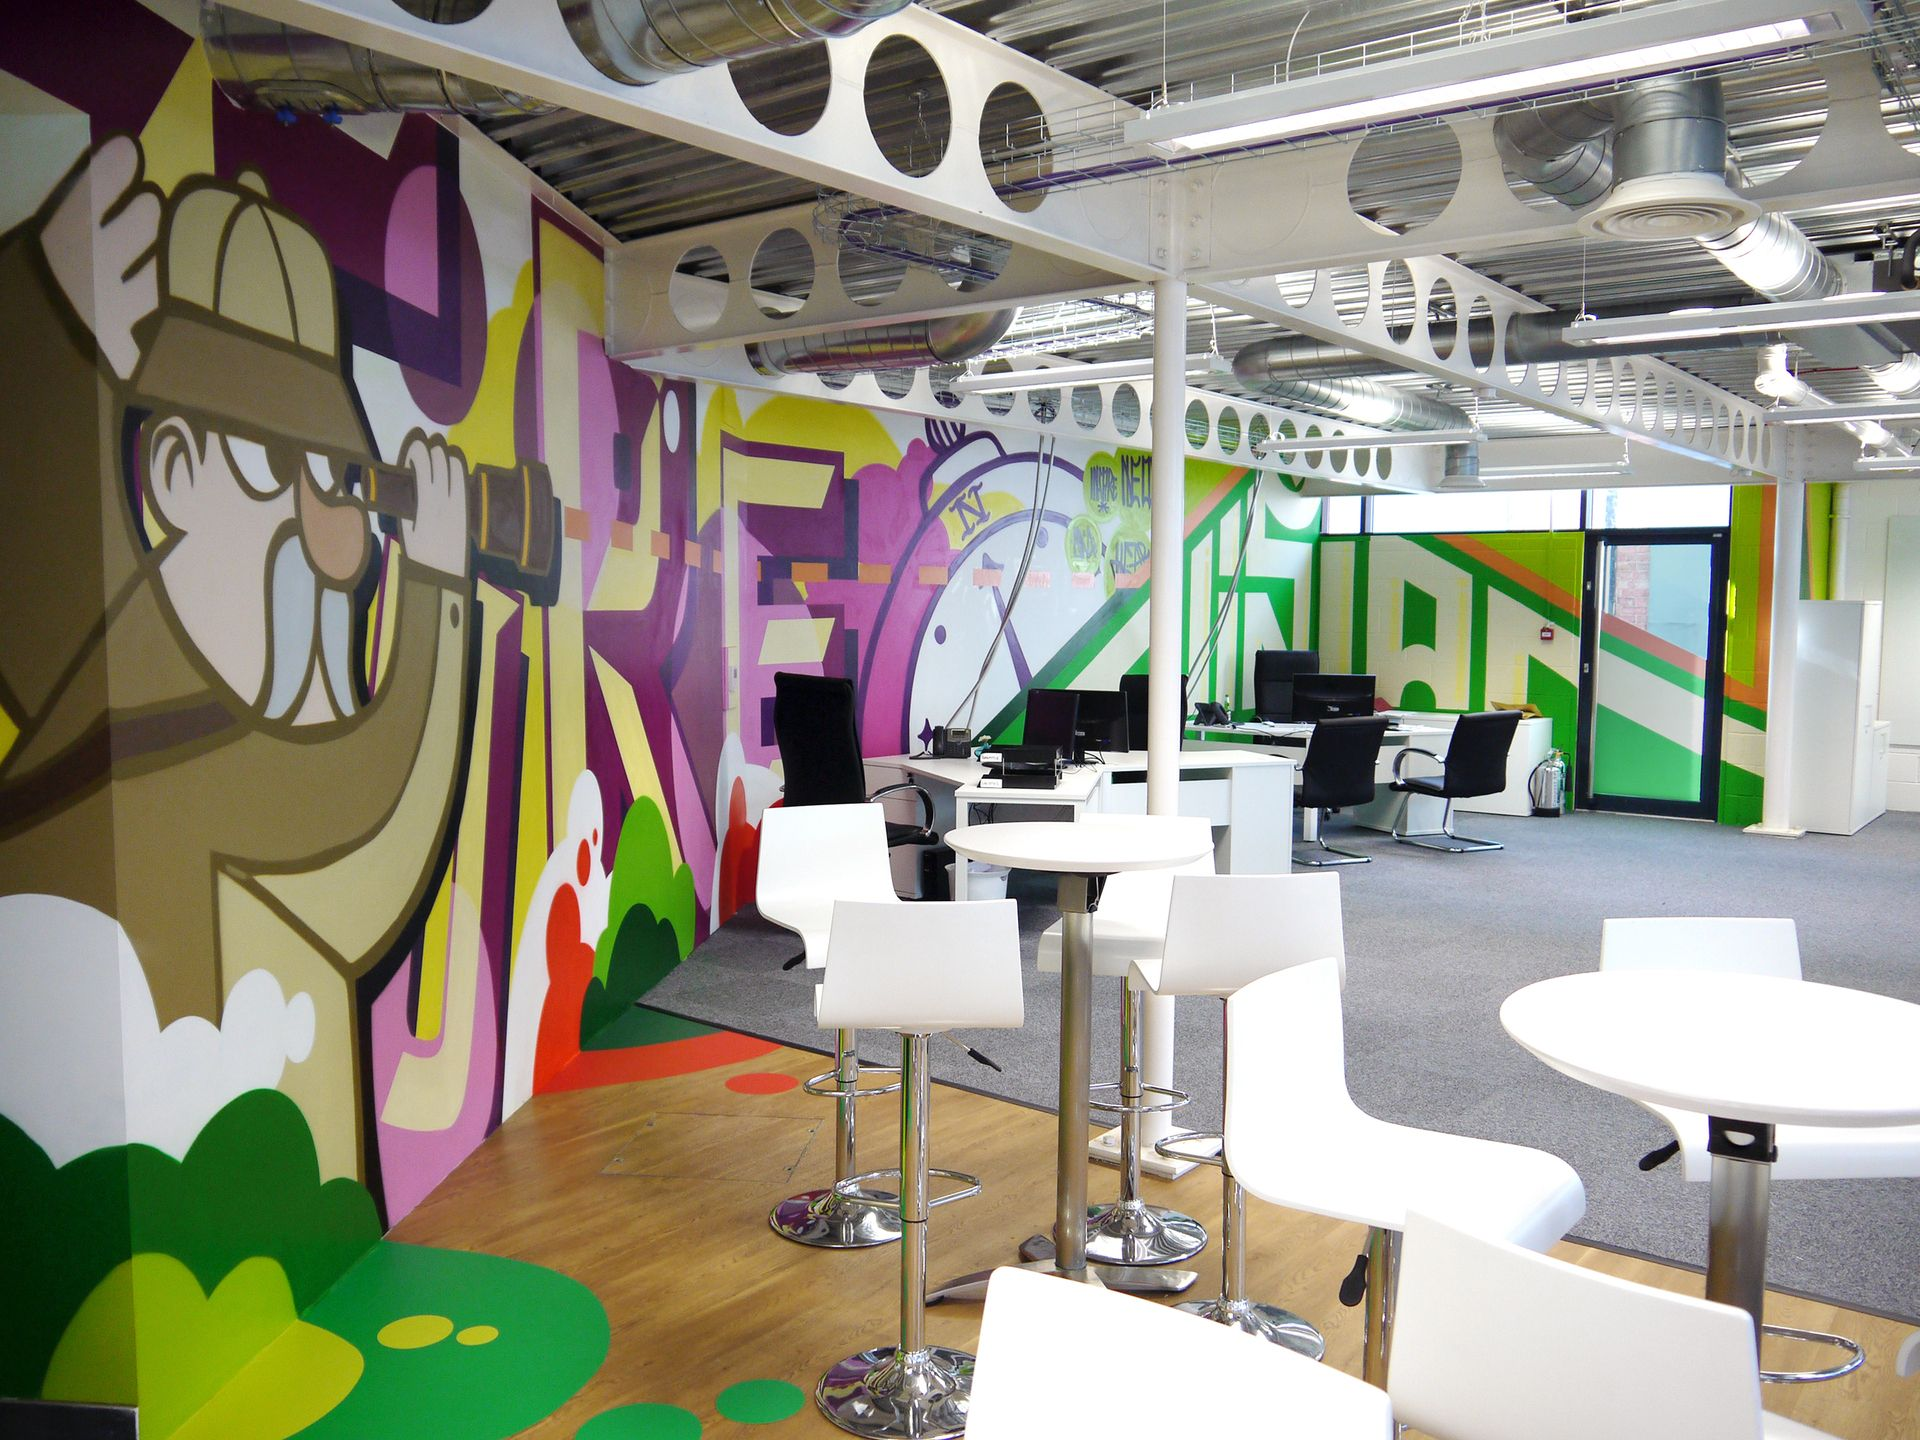 Hand Painted Mural For London Design Agency Office Art Interior